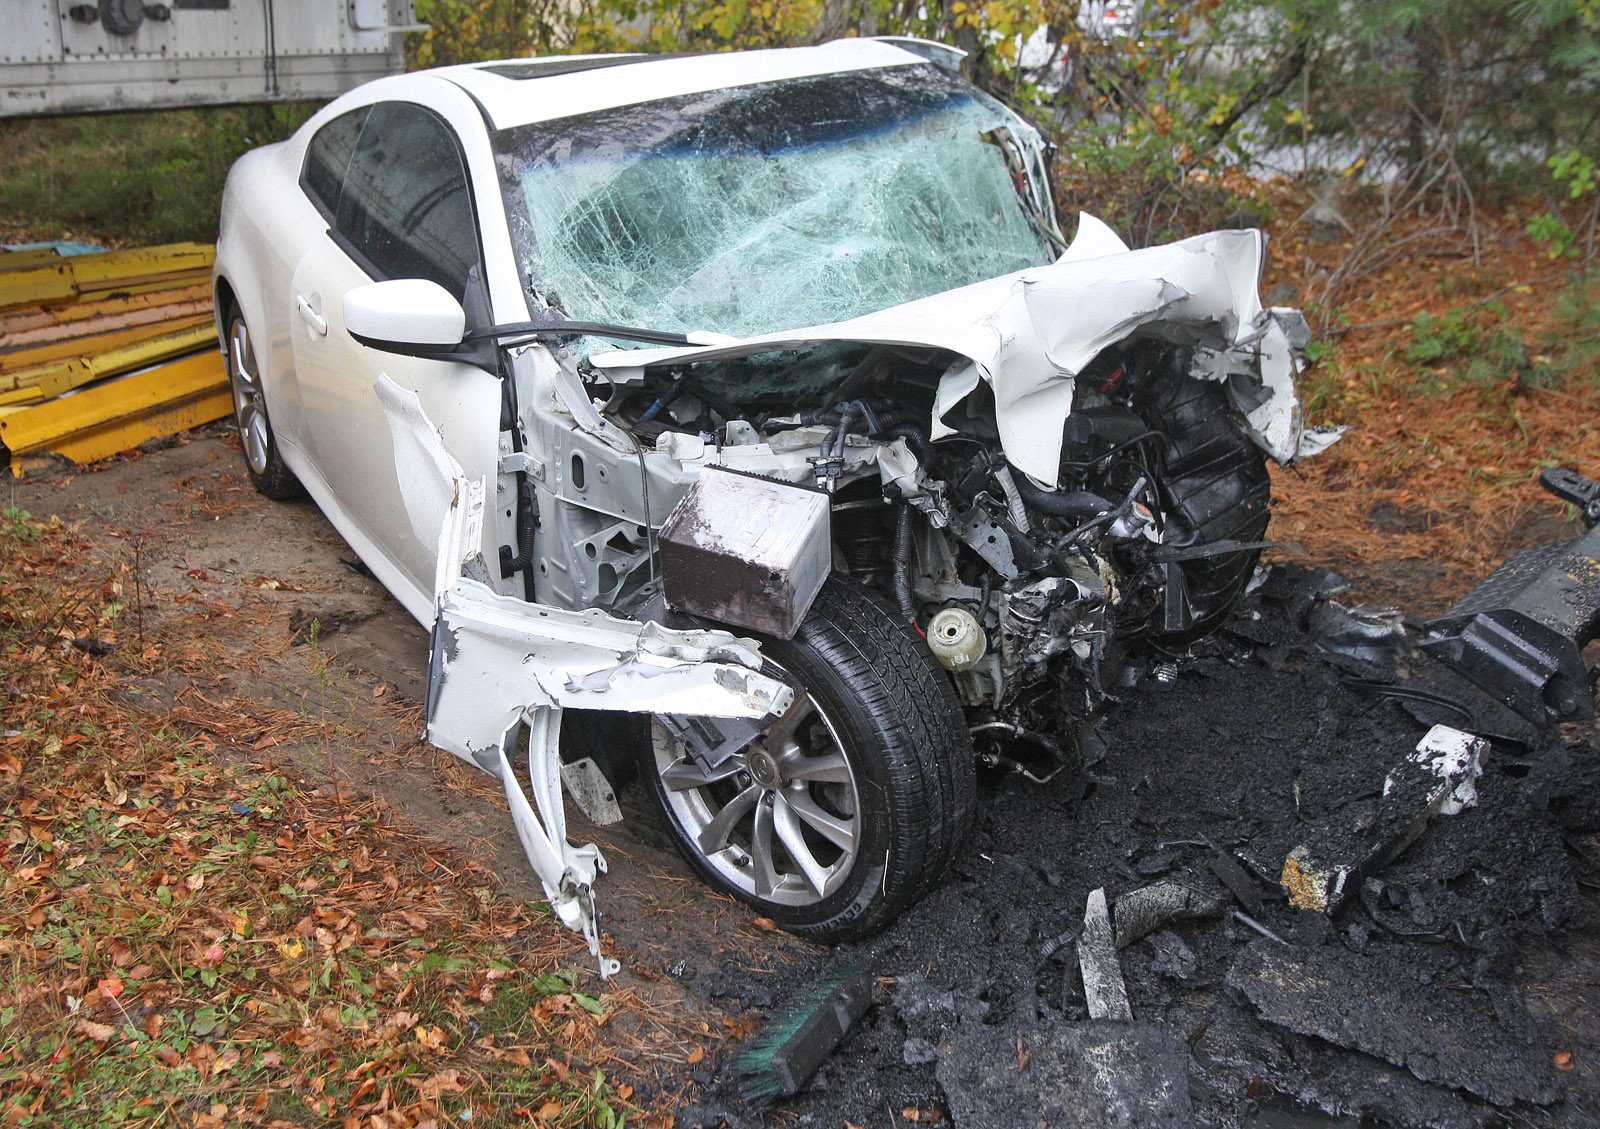 Three of 5 victims in fatal wrong-way crash identified - The